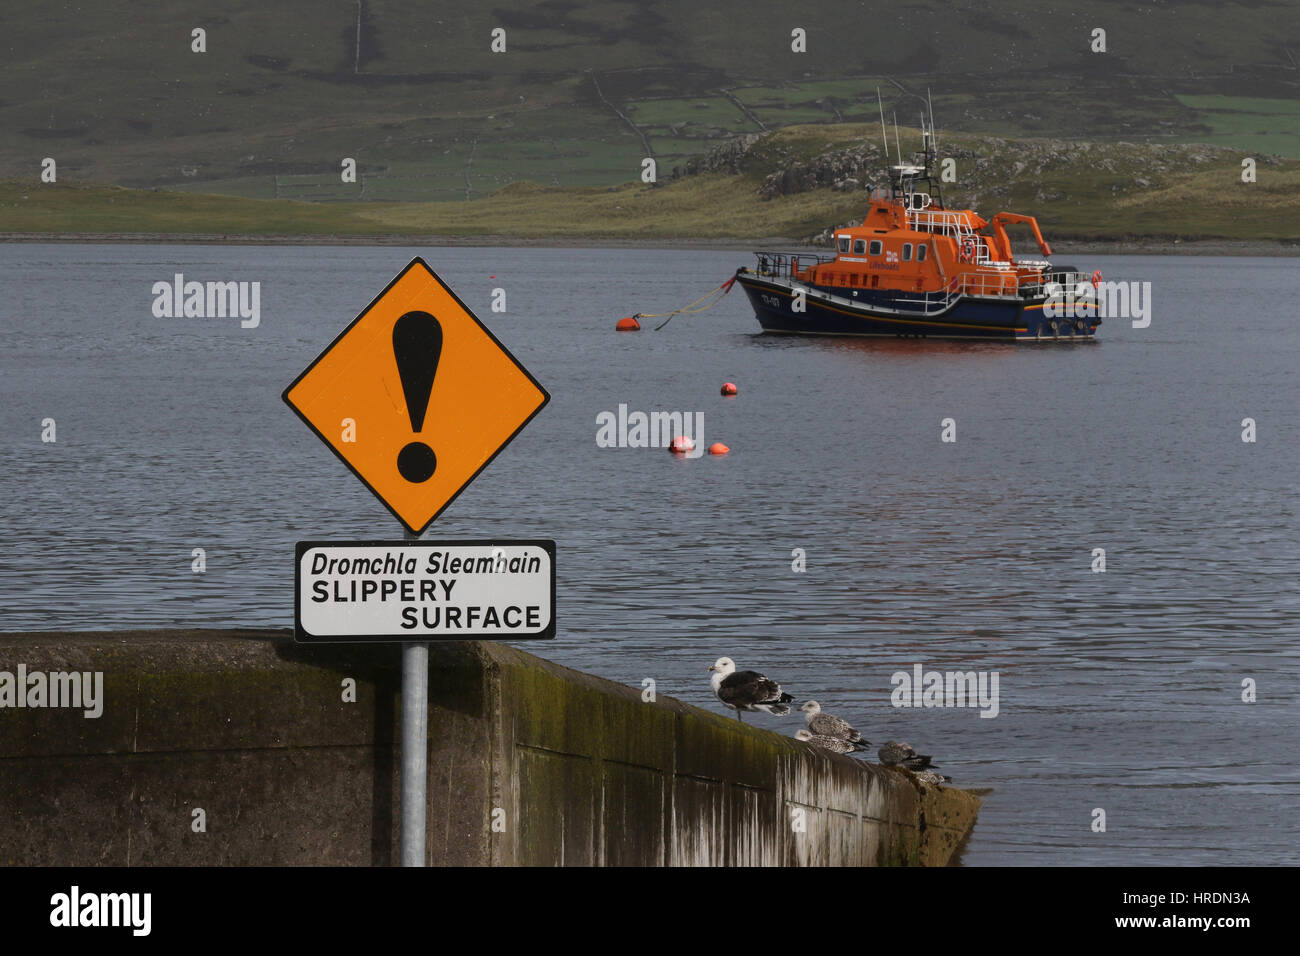 The Valentia Island Lifeboat - RNLB John and Margaret Doig - at Knightstown, Valentia Island, County Kerry, Ireland. - Stock Image